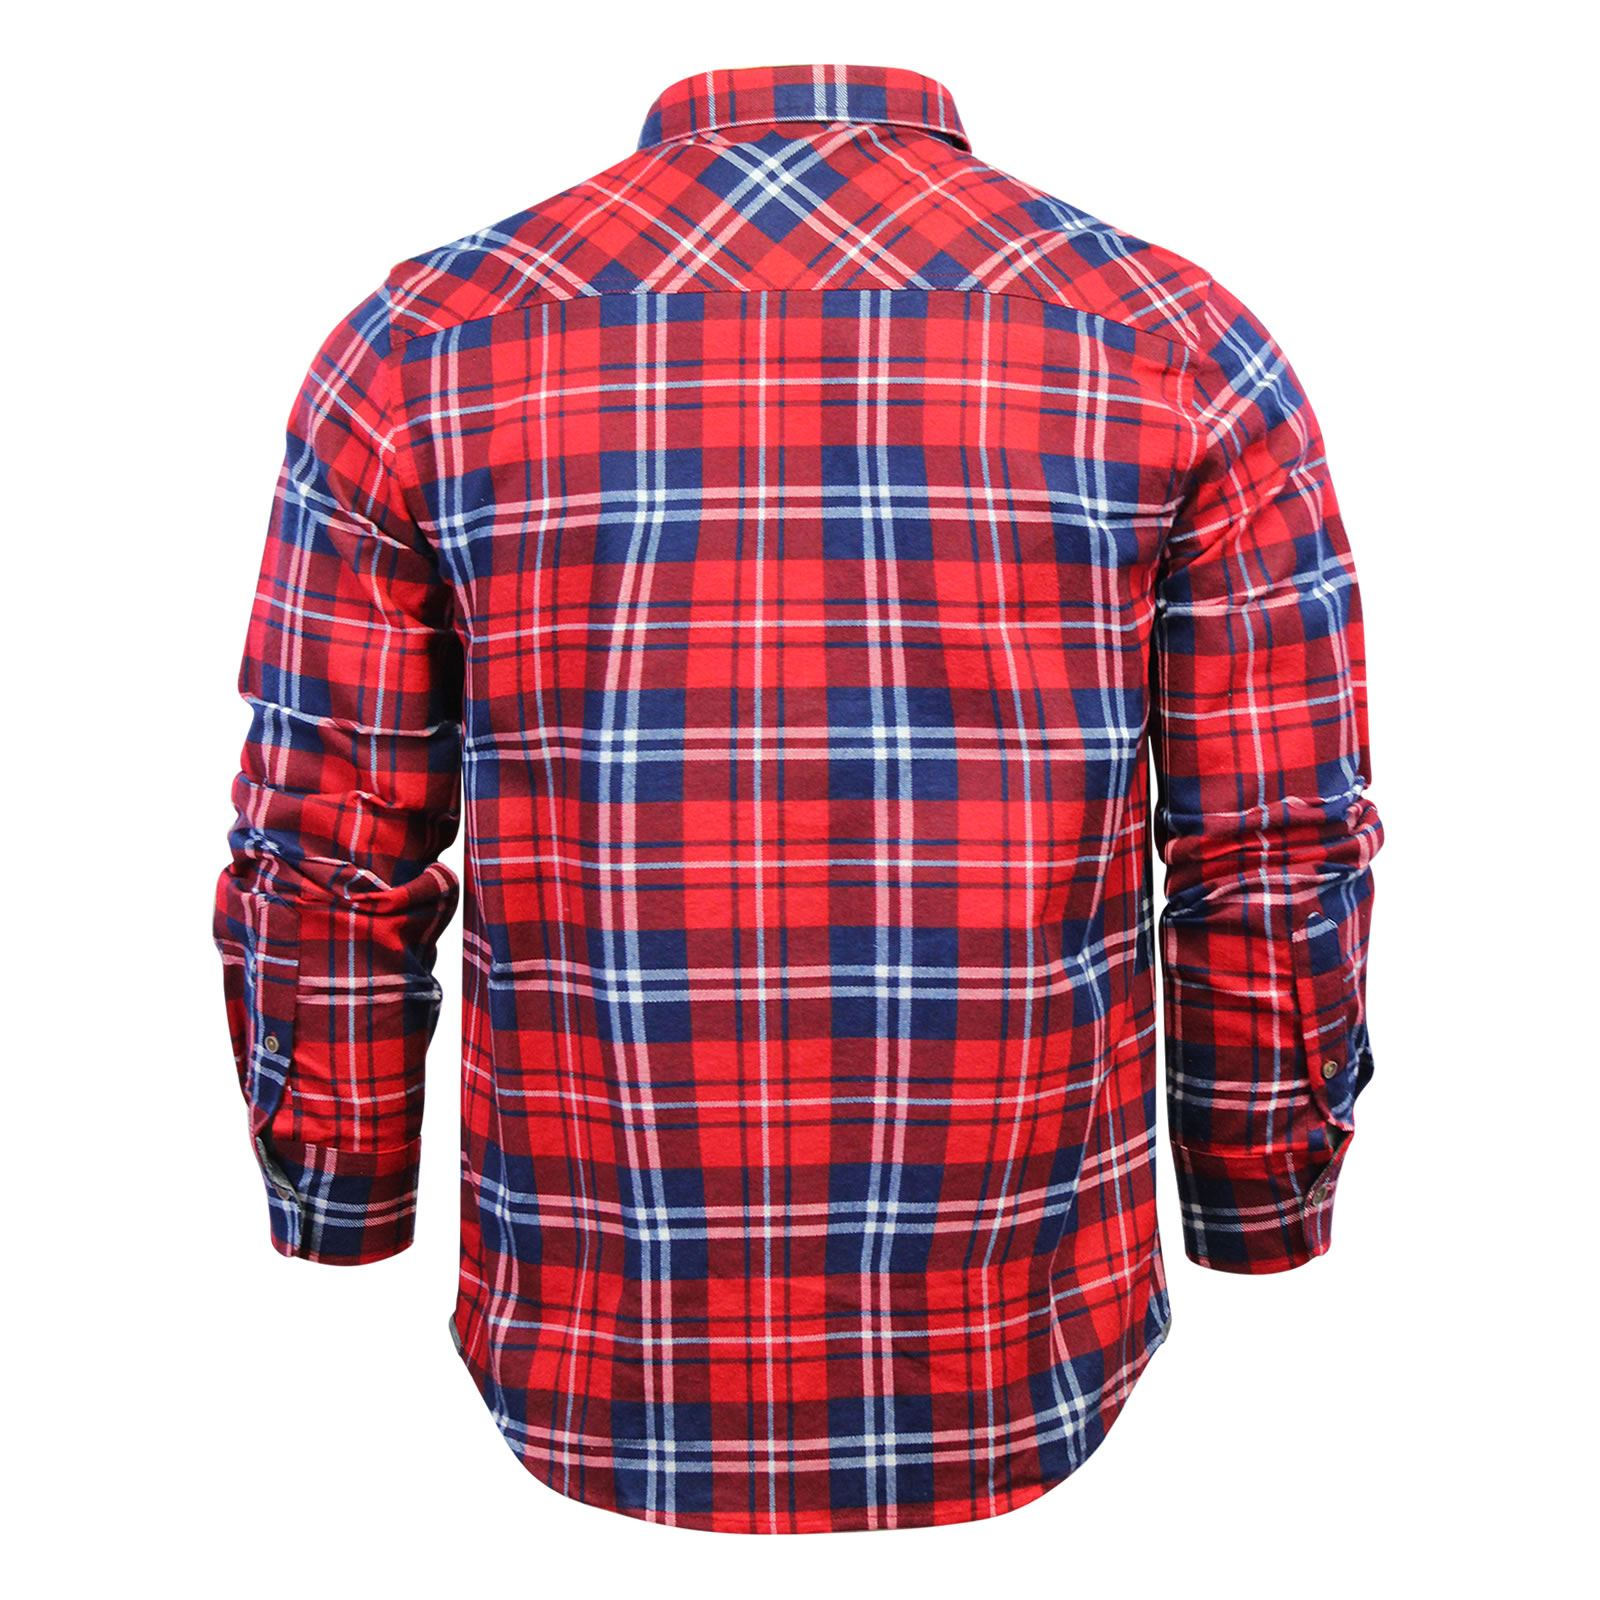 Mens-Check-Shirt-Brave-Soul-Flannel-Brushed-Cotton-Long-Sleeve-Casual-Top thumbnail 89